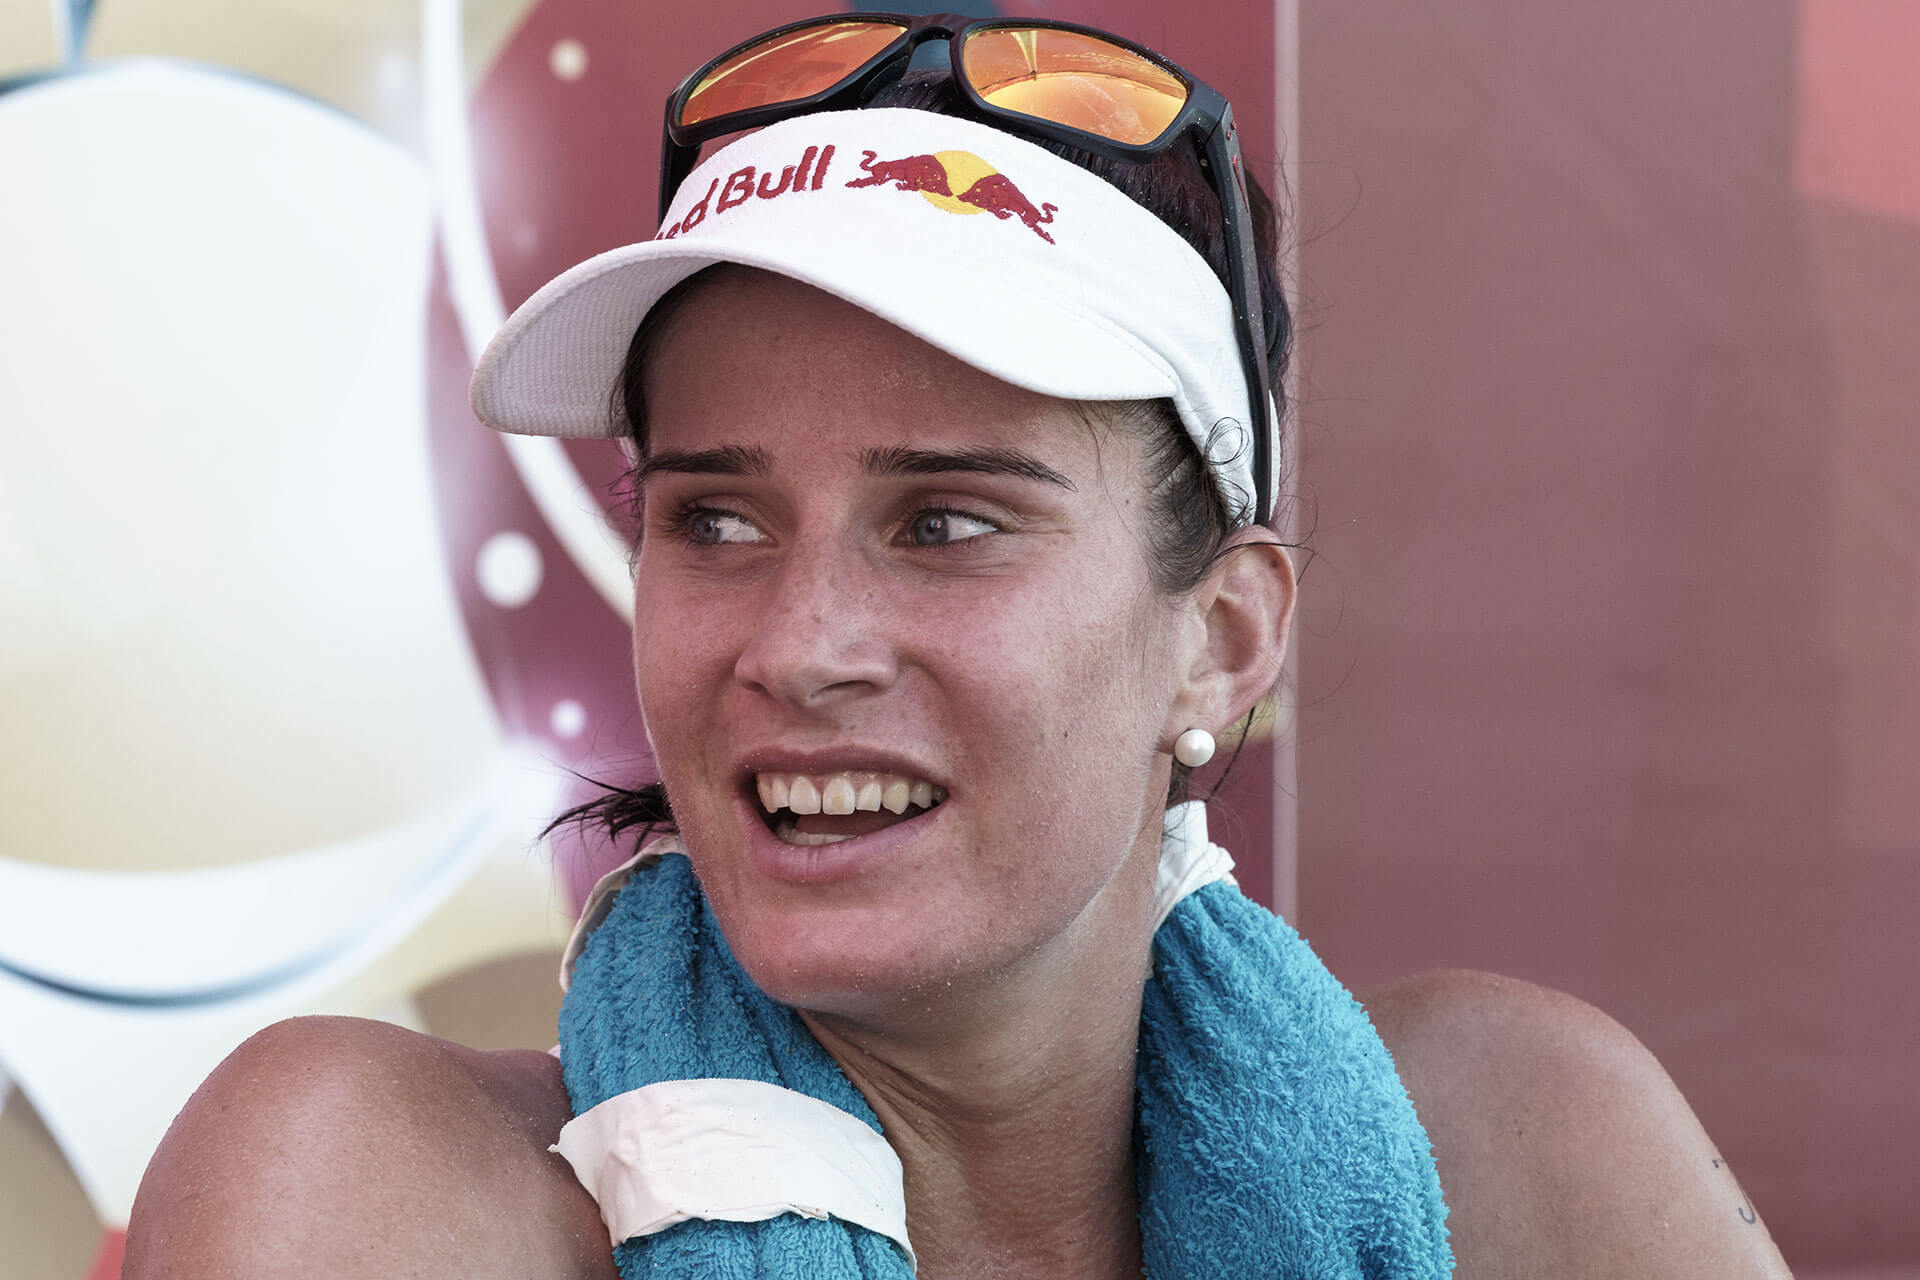 Beachvolleyball WM Joana Heidrich